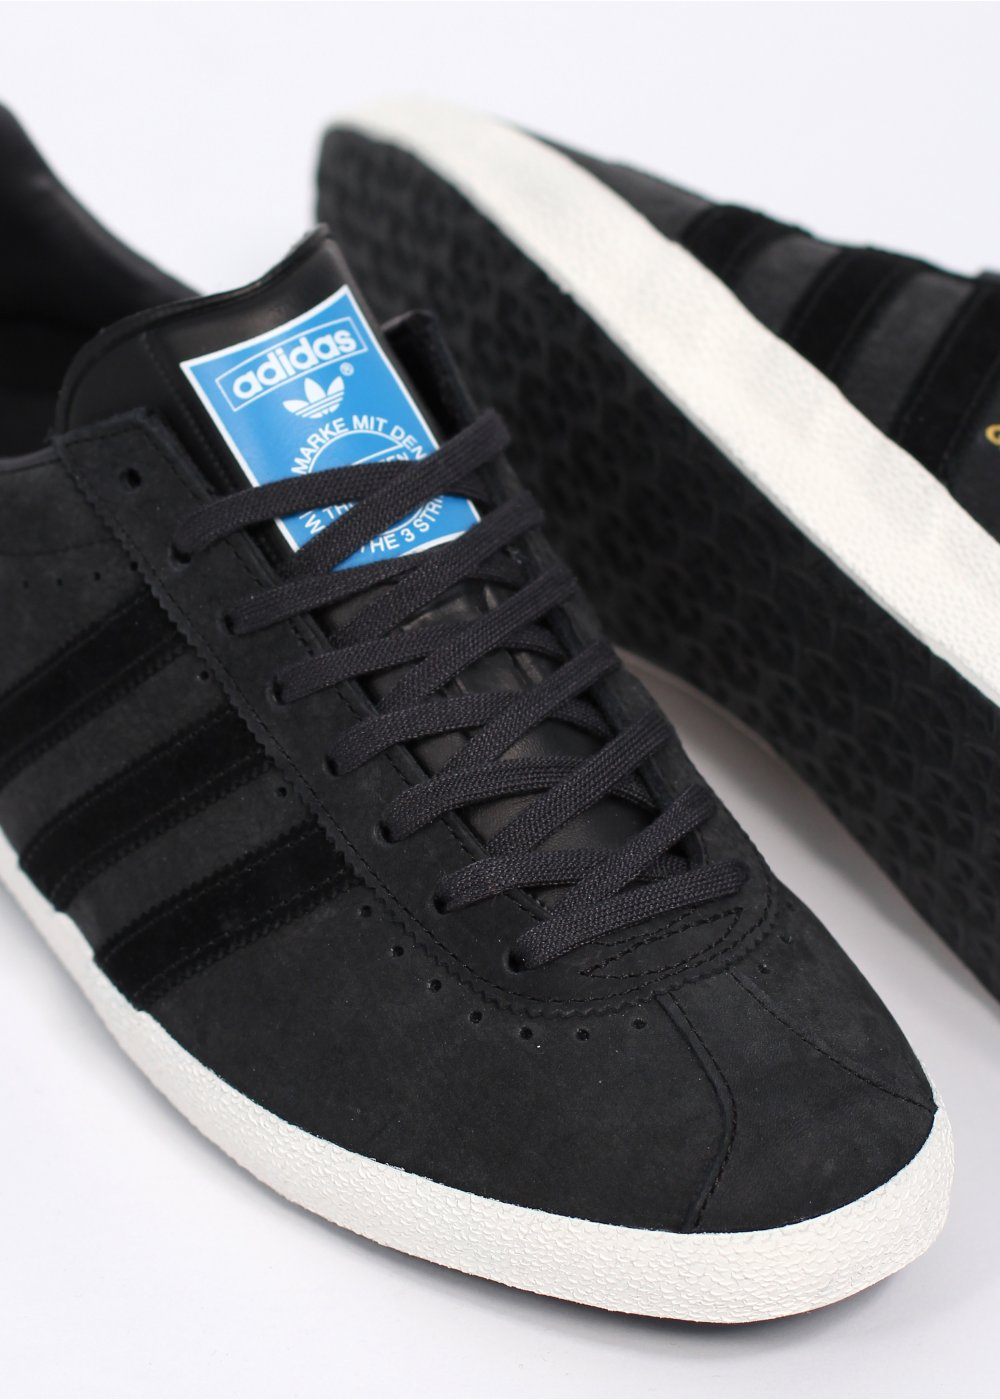 Adidas Originals Originals Top Ten Low Sneaker In Black: Adidas Originals Gazelle OG Punched Leather Trainers